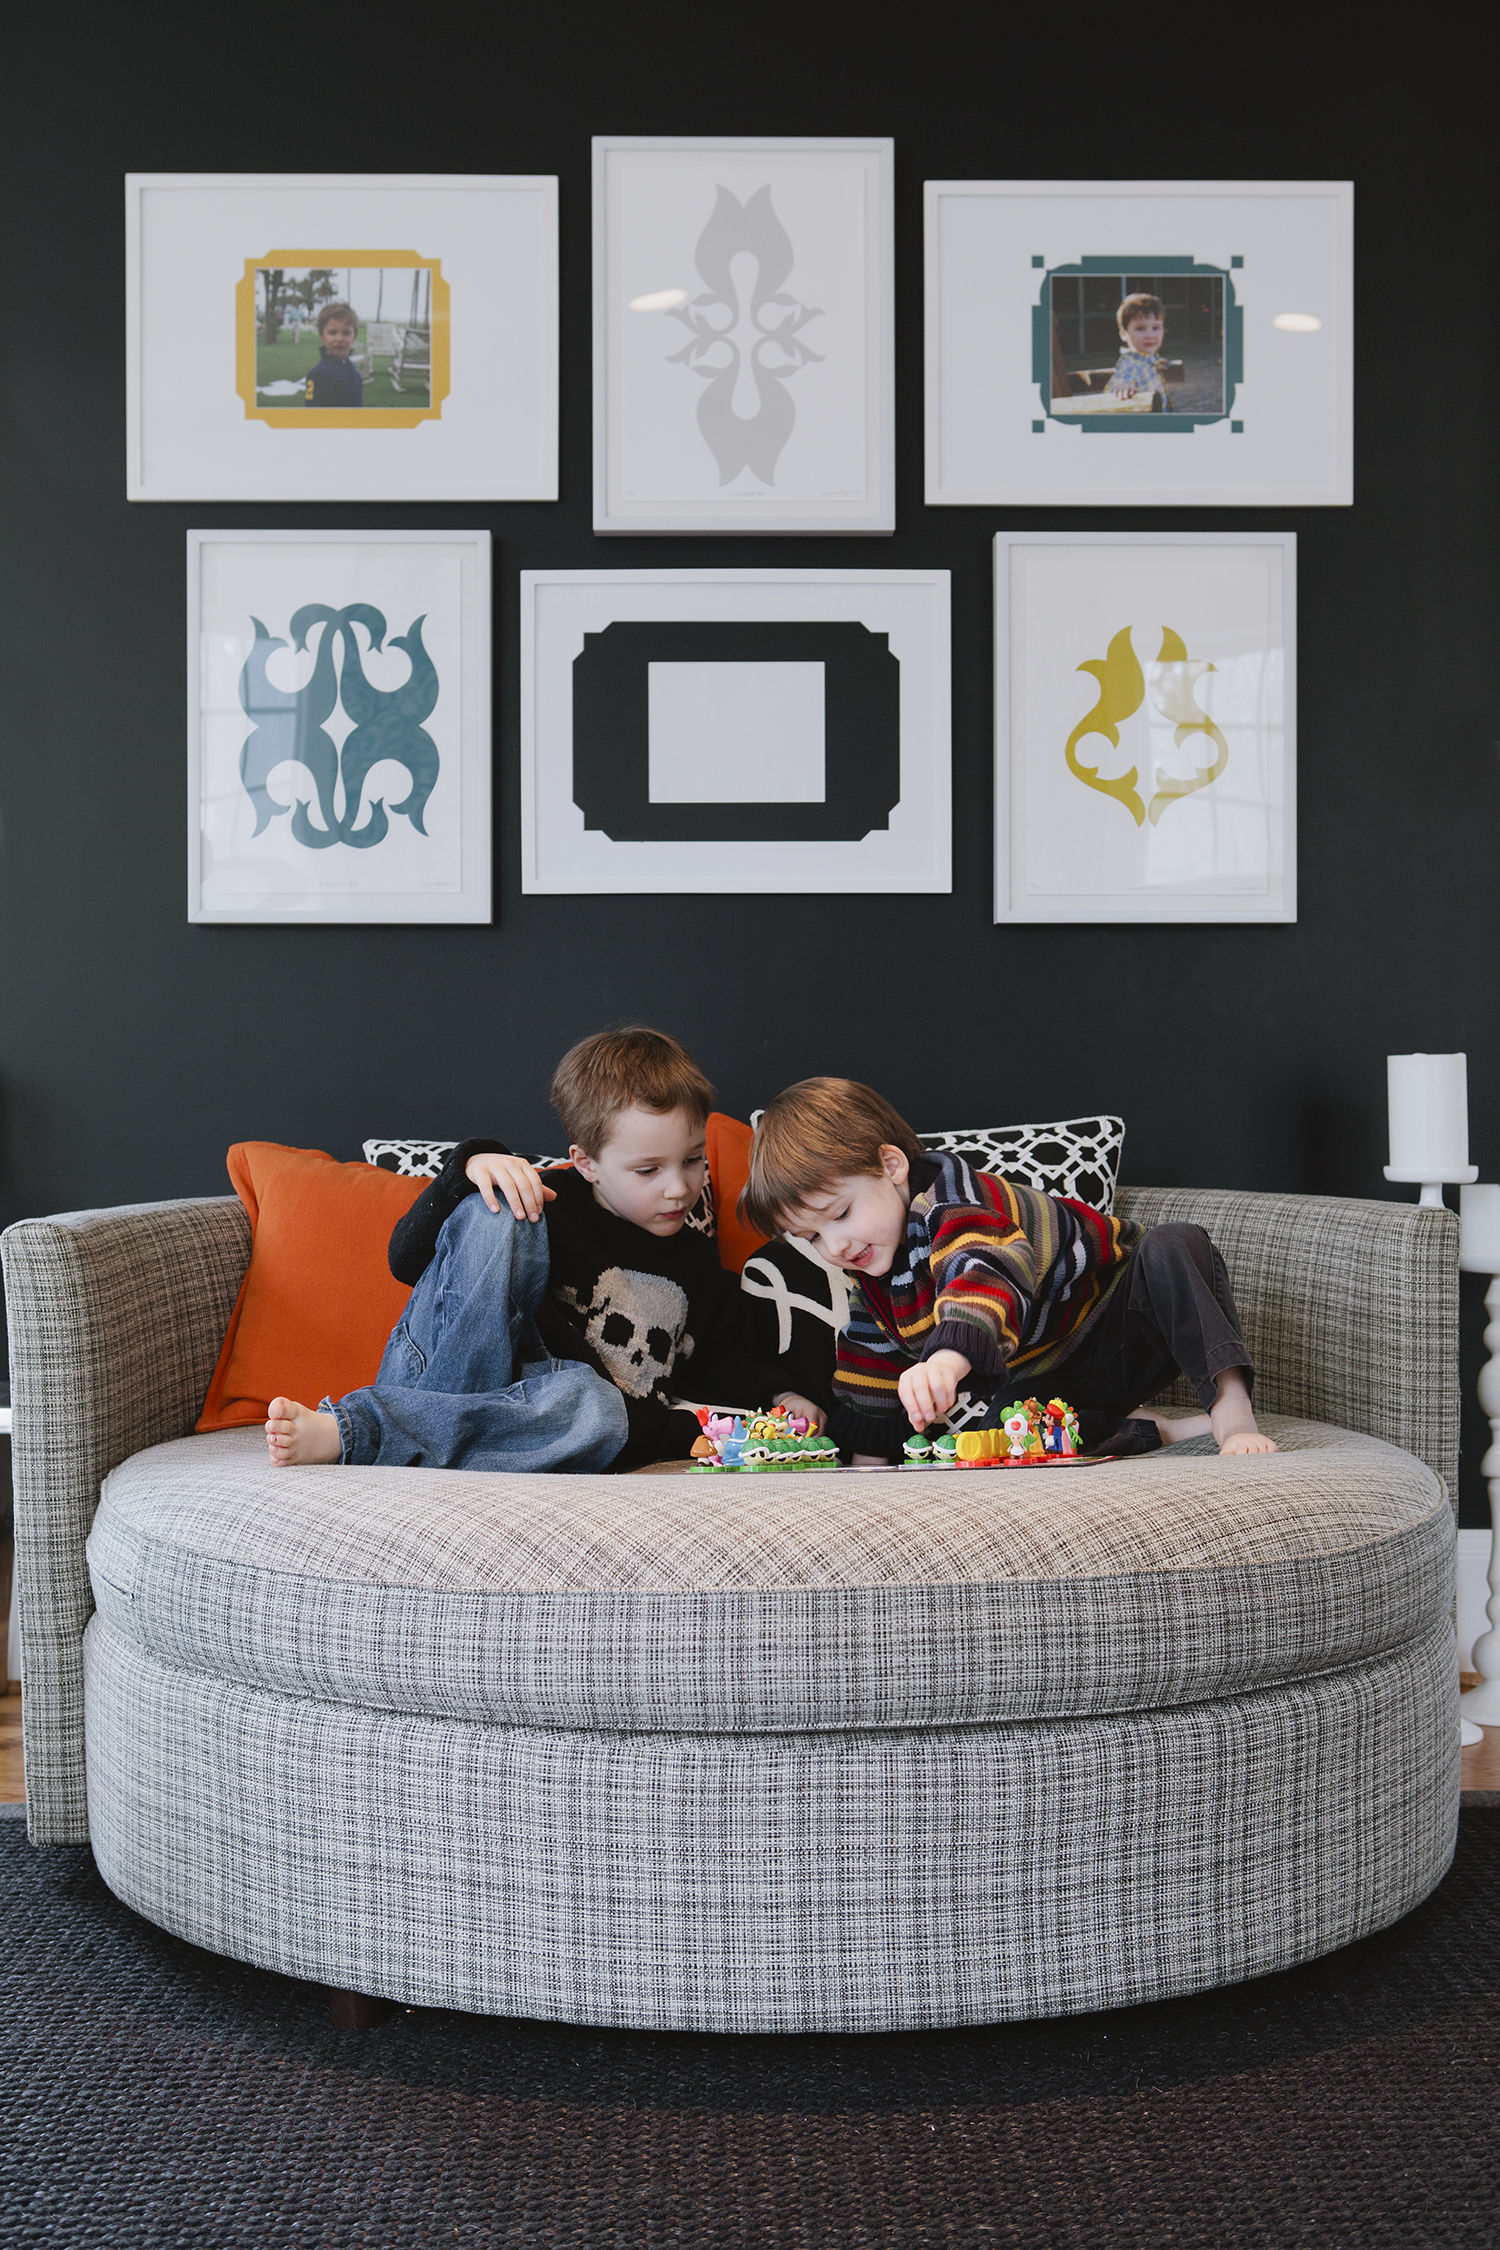 lifestyle-editorial-children-washington-dc-malek-naz-photography-contempo-kids-board-games.jpg